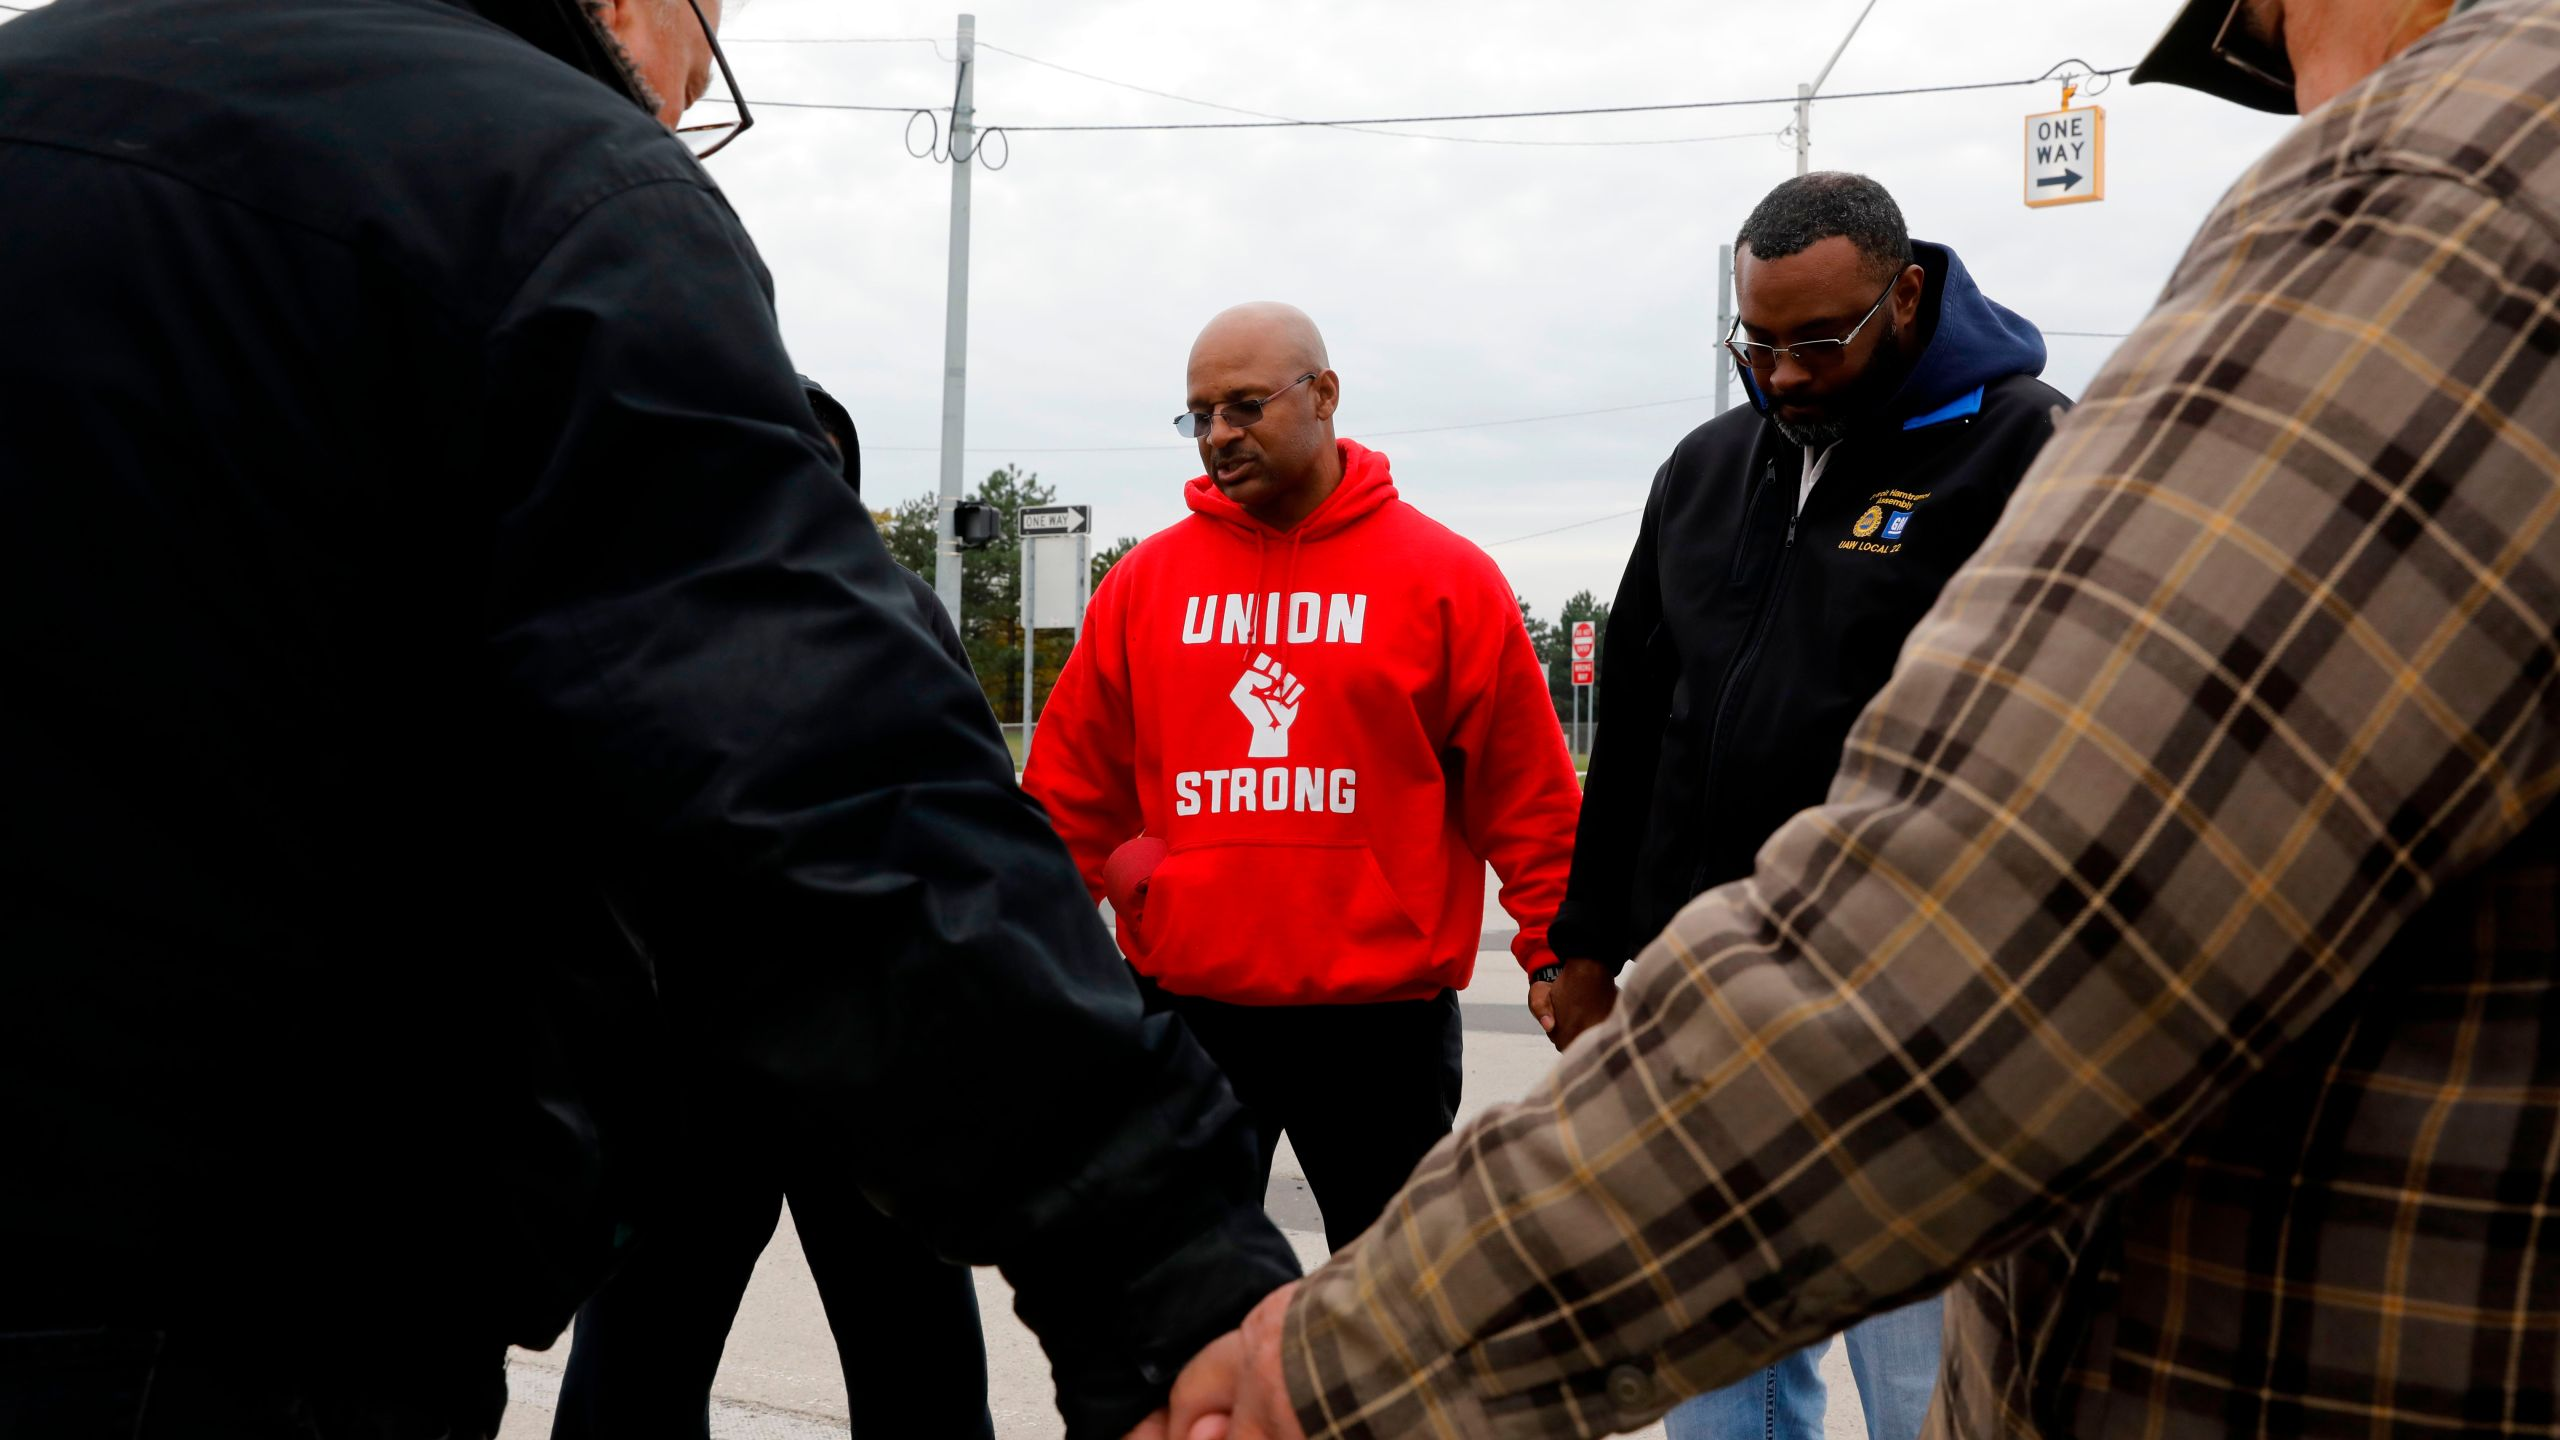 United Auto Workers member Joe Ryan, center, leads a prayer circle to recite a strike closing prayer outside of the General Motors Detroit-Hamtramck Assembly plant in Detroit, Michigan, on Oct. 25, 2019. (Credit: Jeff Kowalsky / AFP / Getty Images)